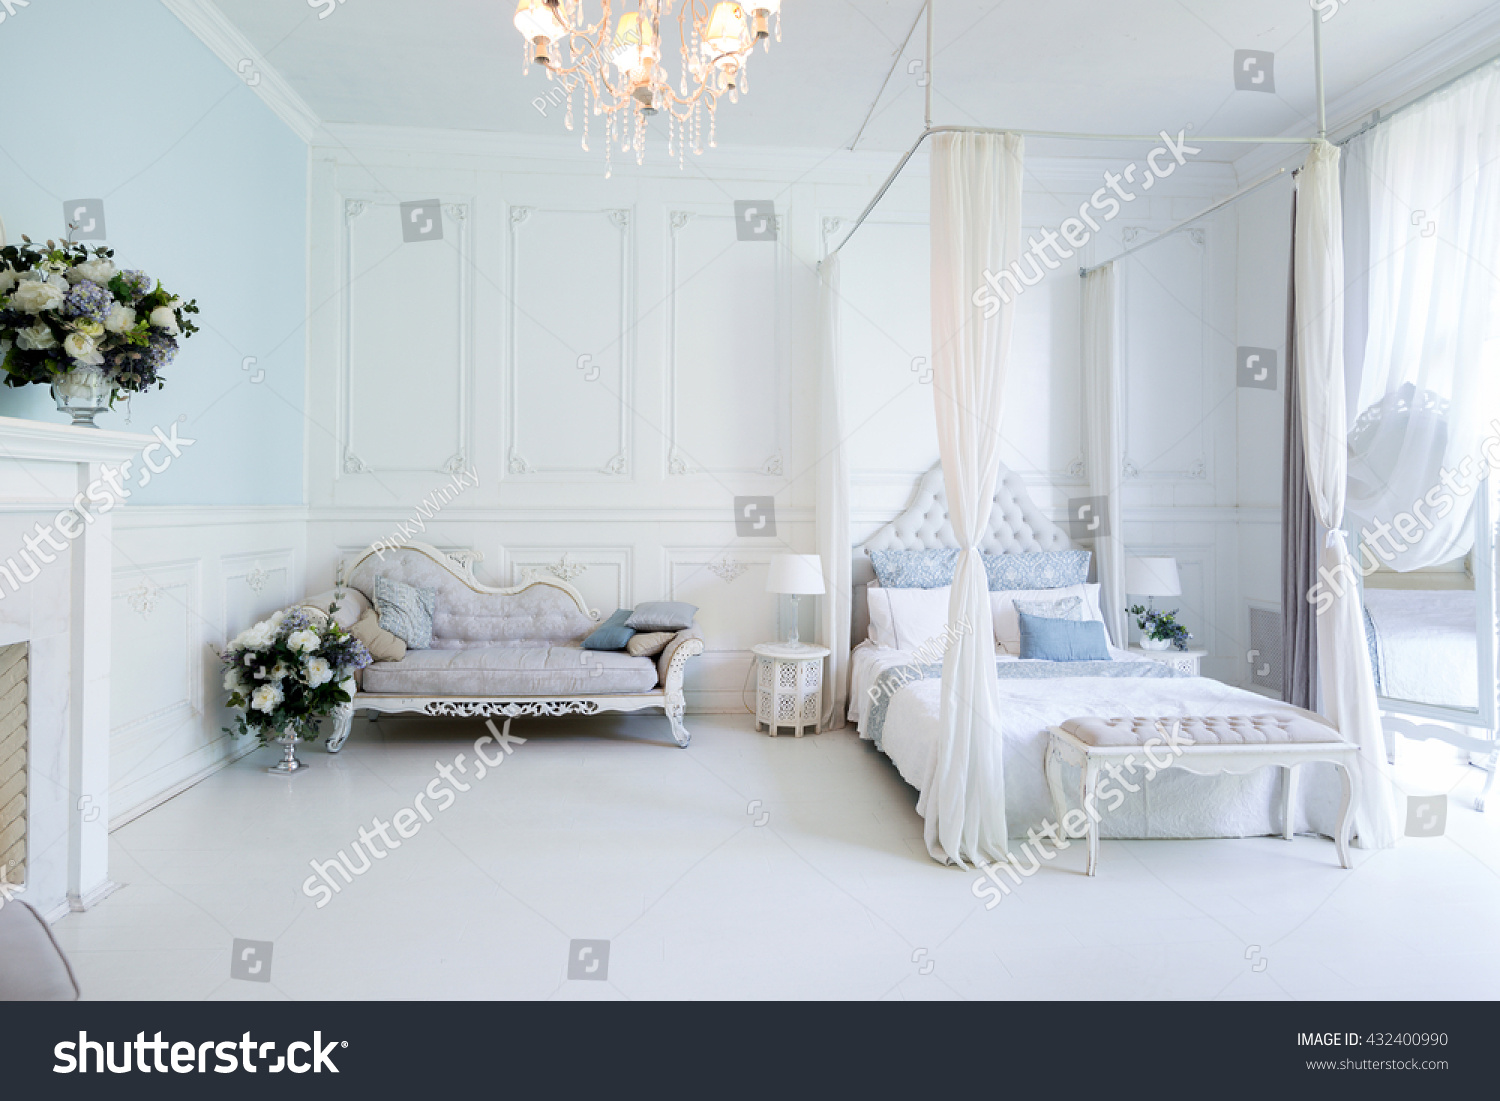 Bright Clean Stylish Interior Bedroom Living Stock Photo (Royalty ...